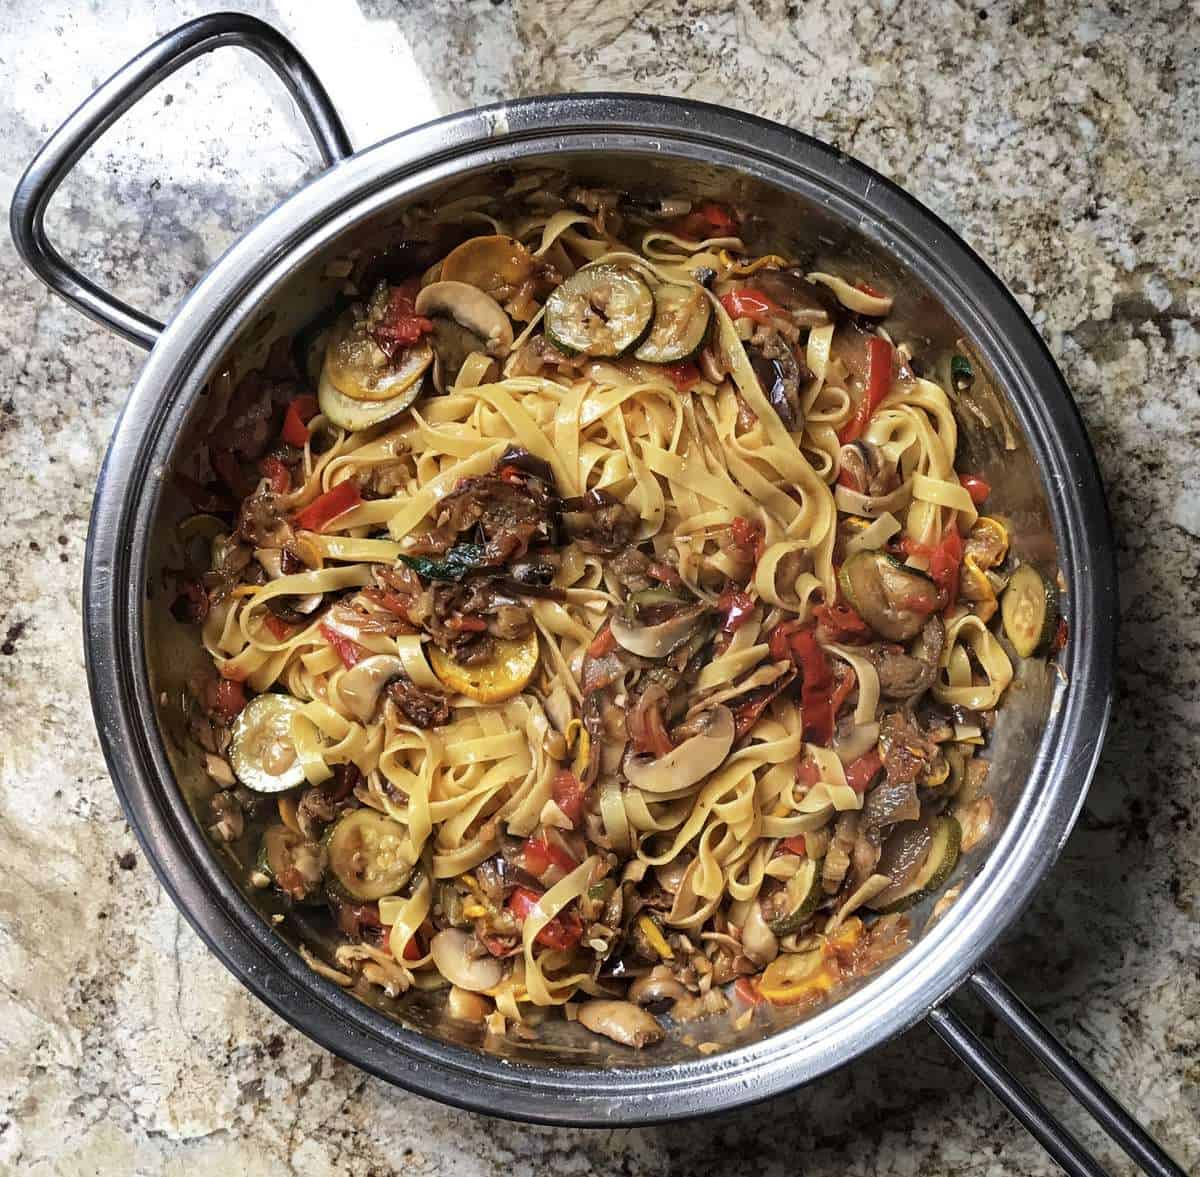 The pasta is now added to the pan of roasted vegetables.